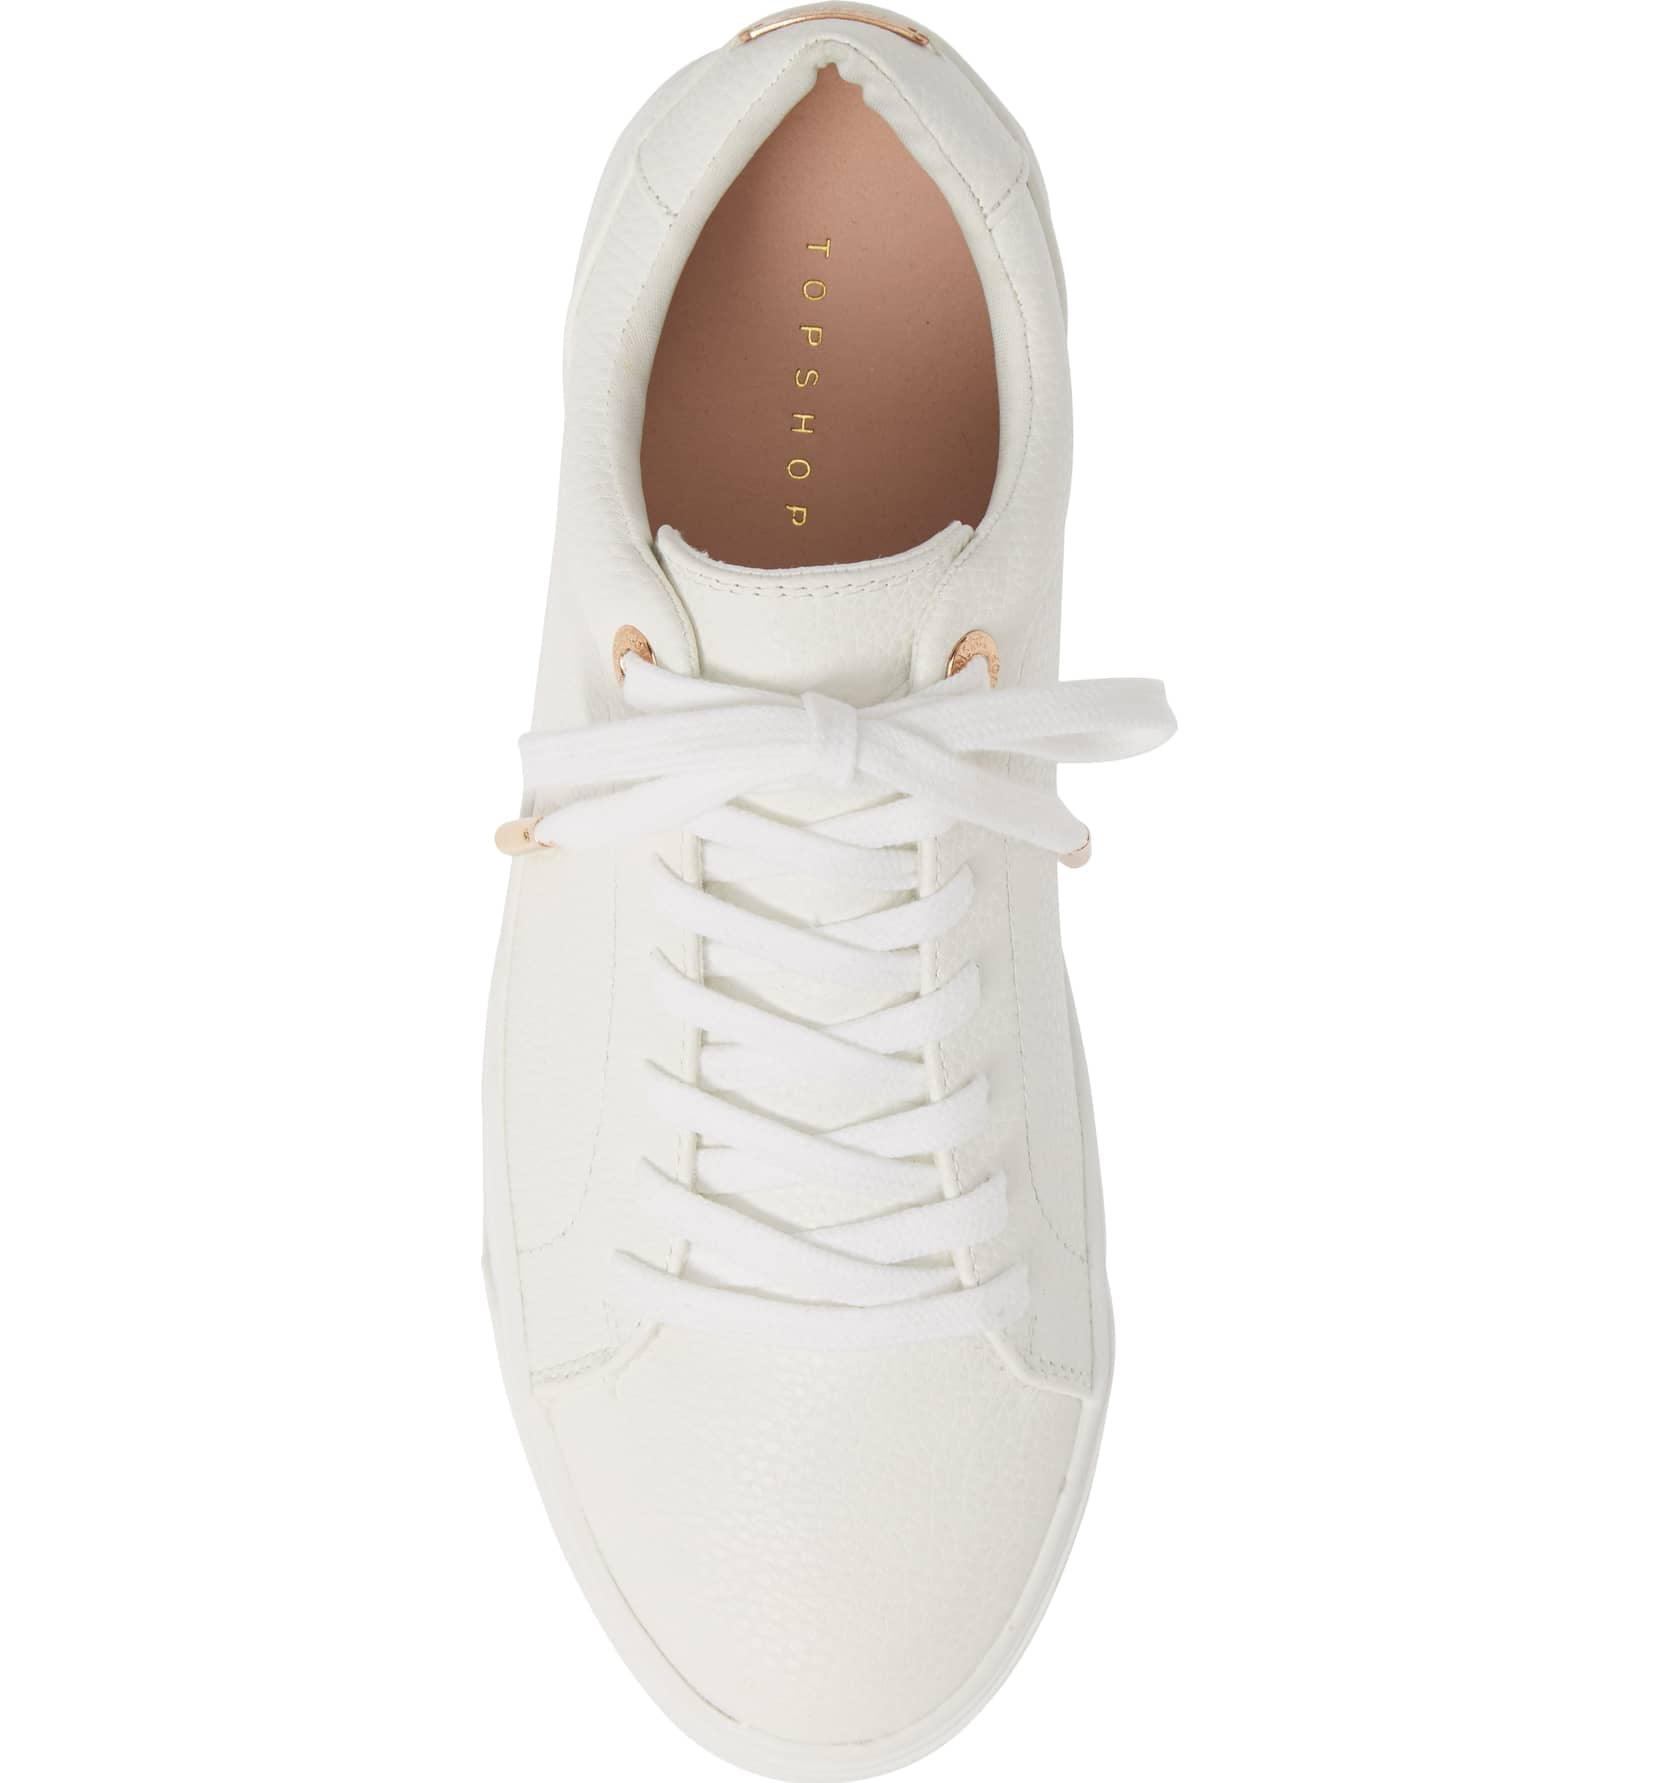 Topshop Curly Low-Top Sneakers | I'm